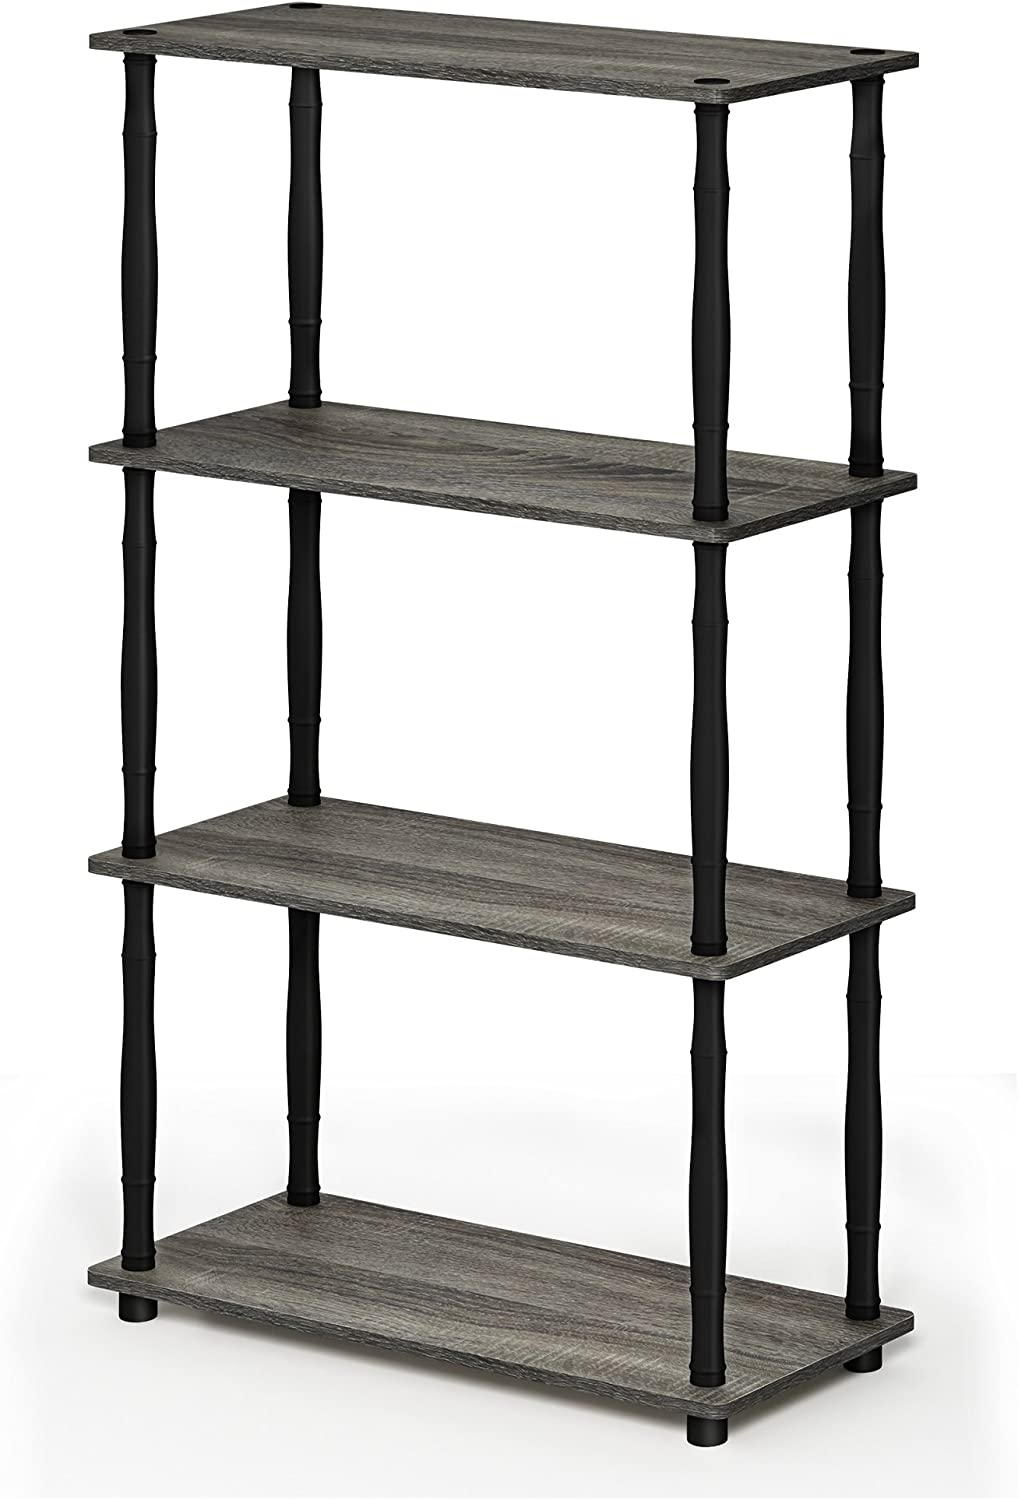 FURINNO Turn-N 4-Tier Multipurpose Shelf Display Rack with Classic Tubes, French Oak Grey/Black